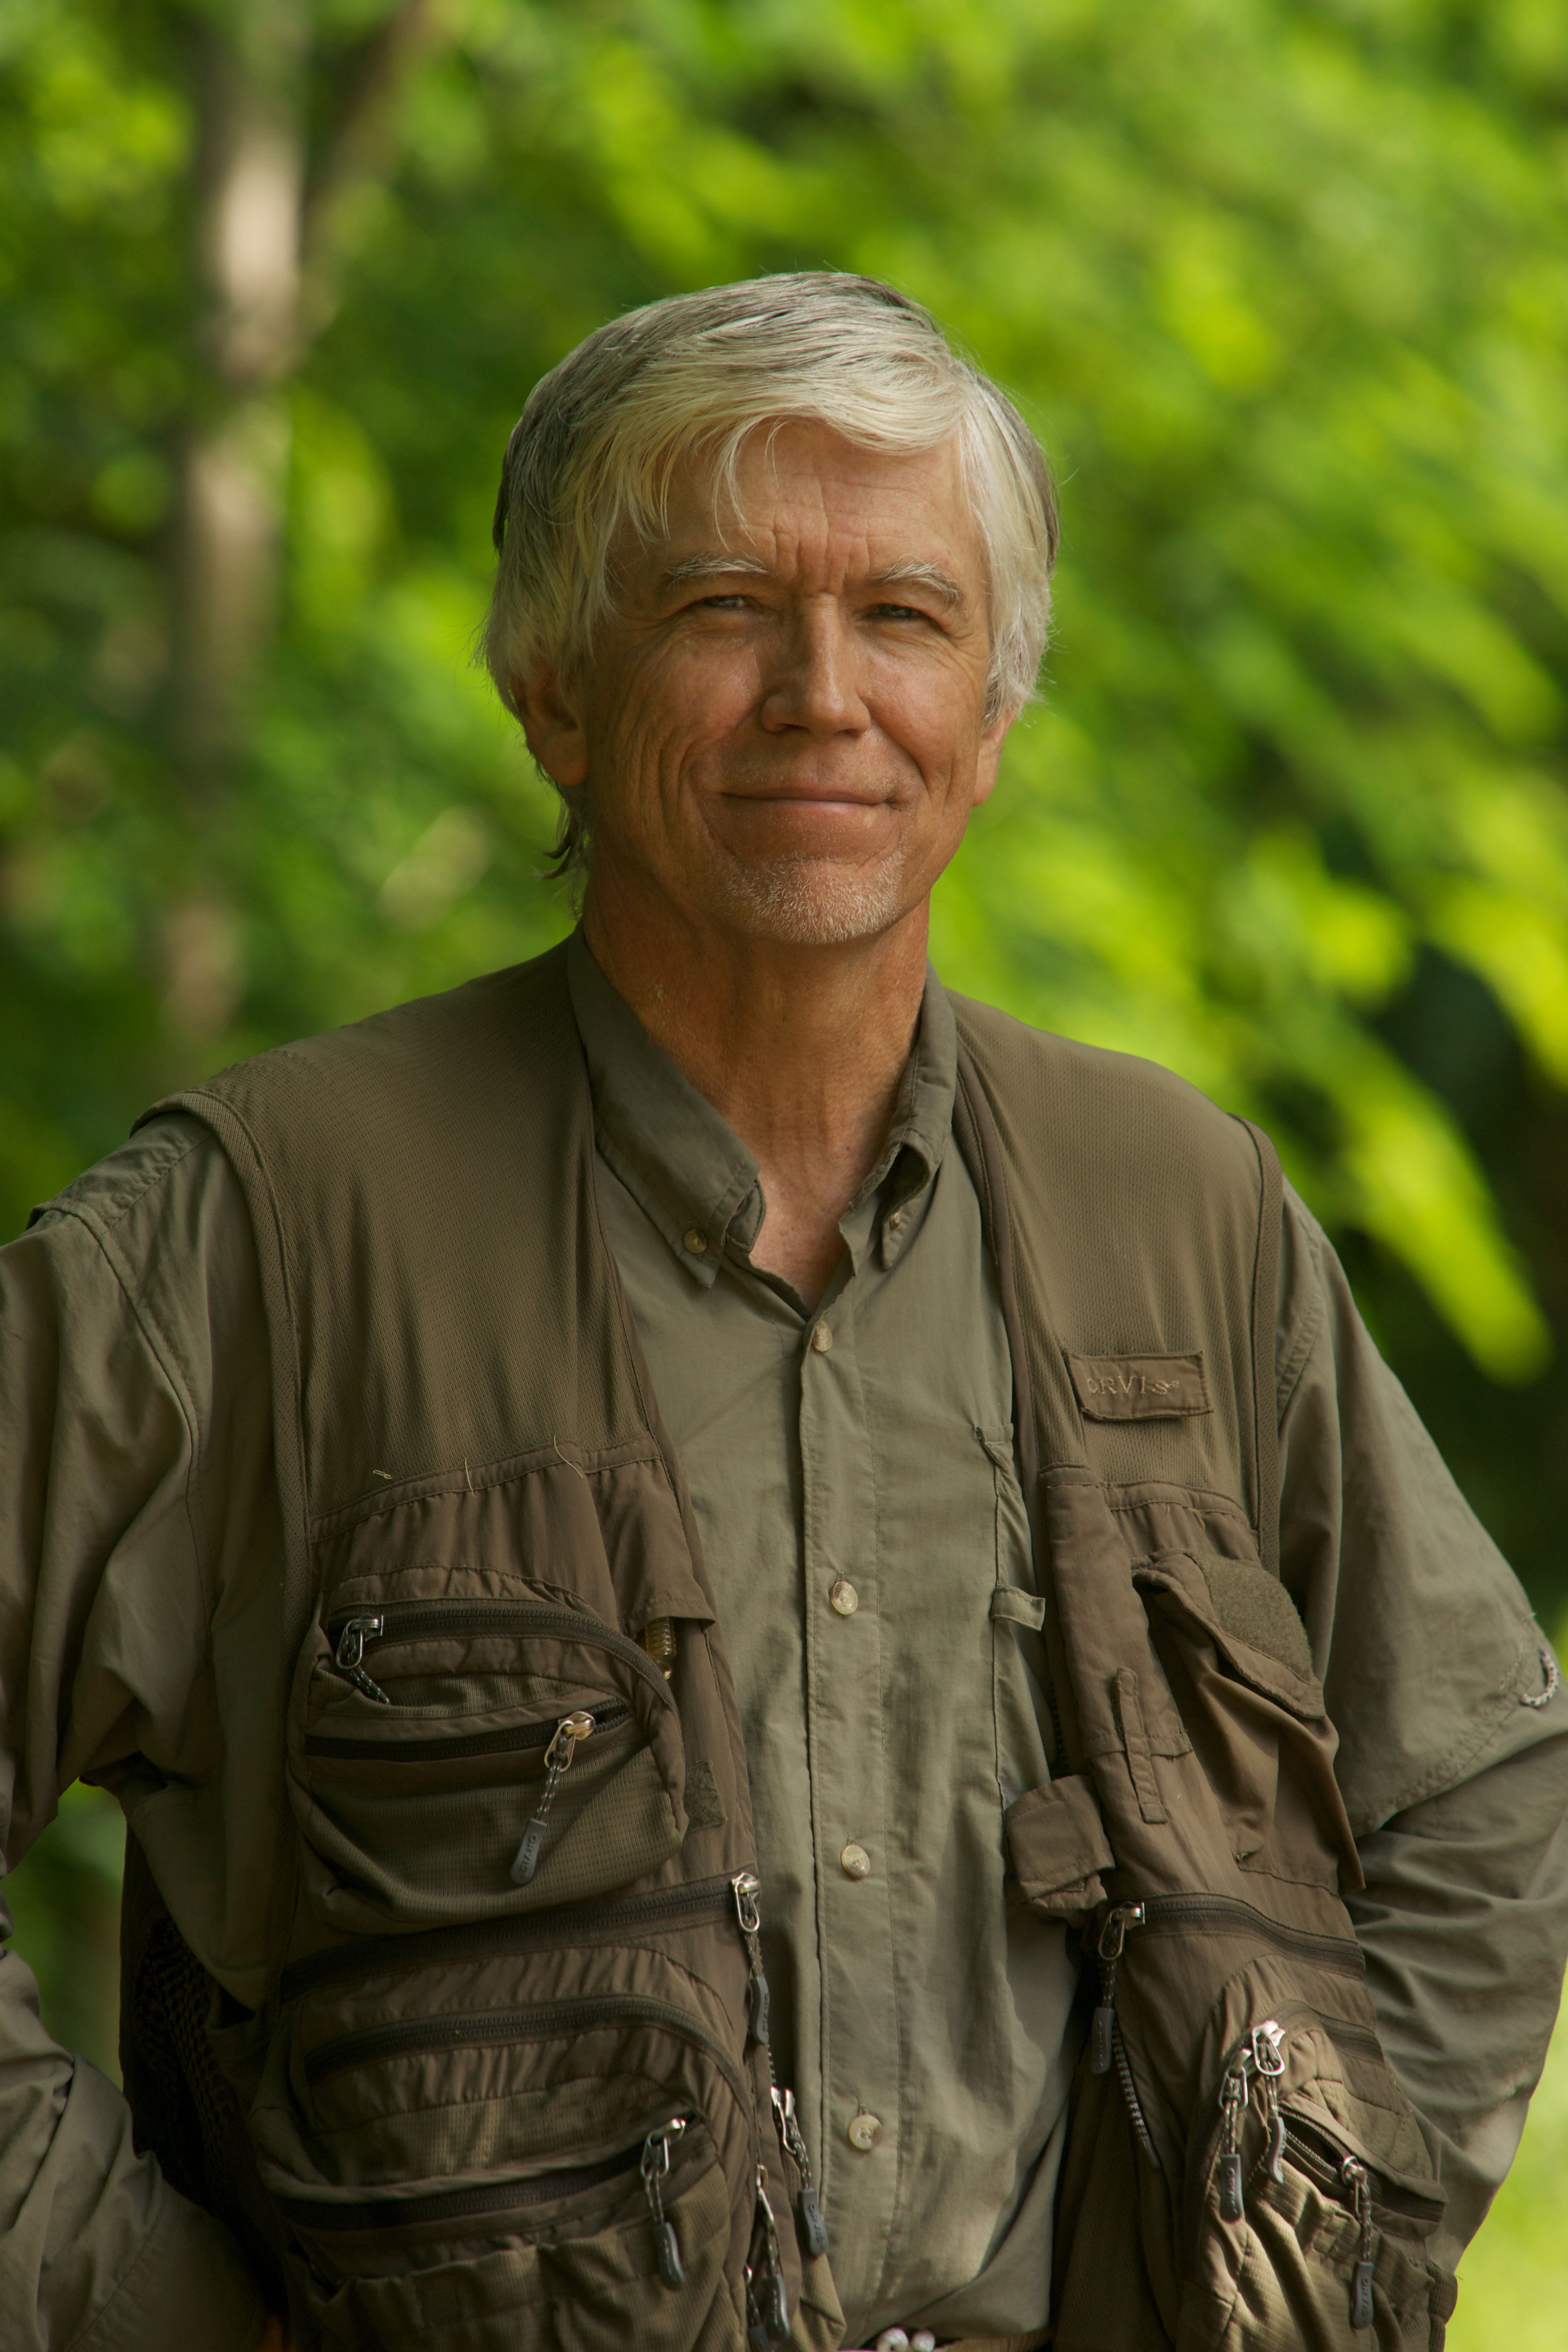 Indianapolis-Based National Prize Honors Animal Conservationists